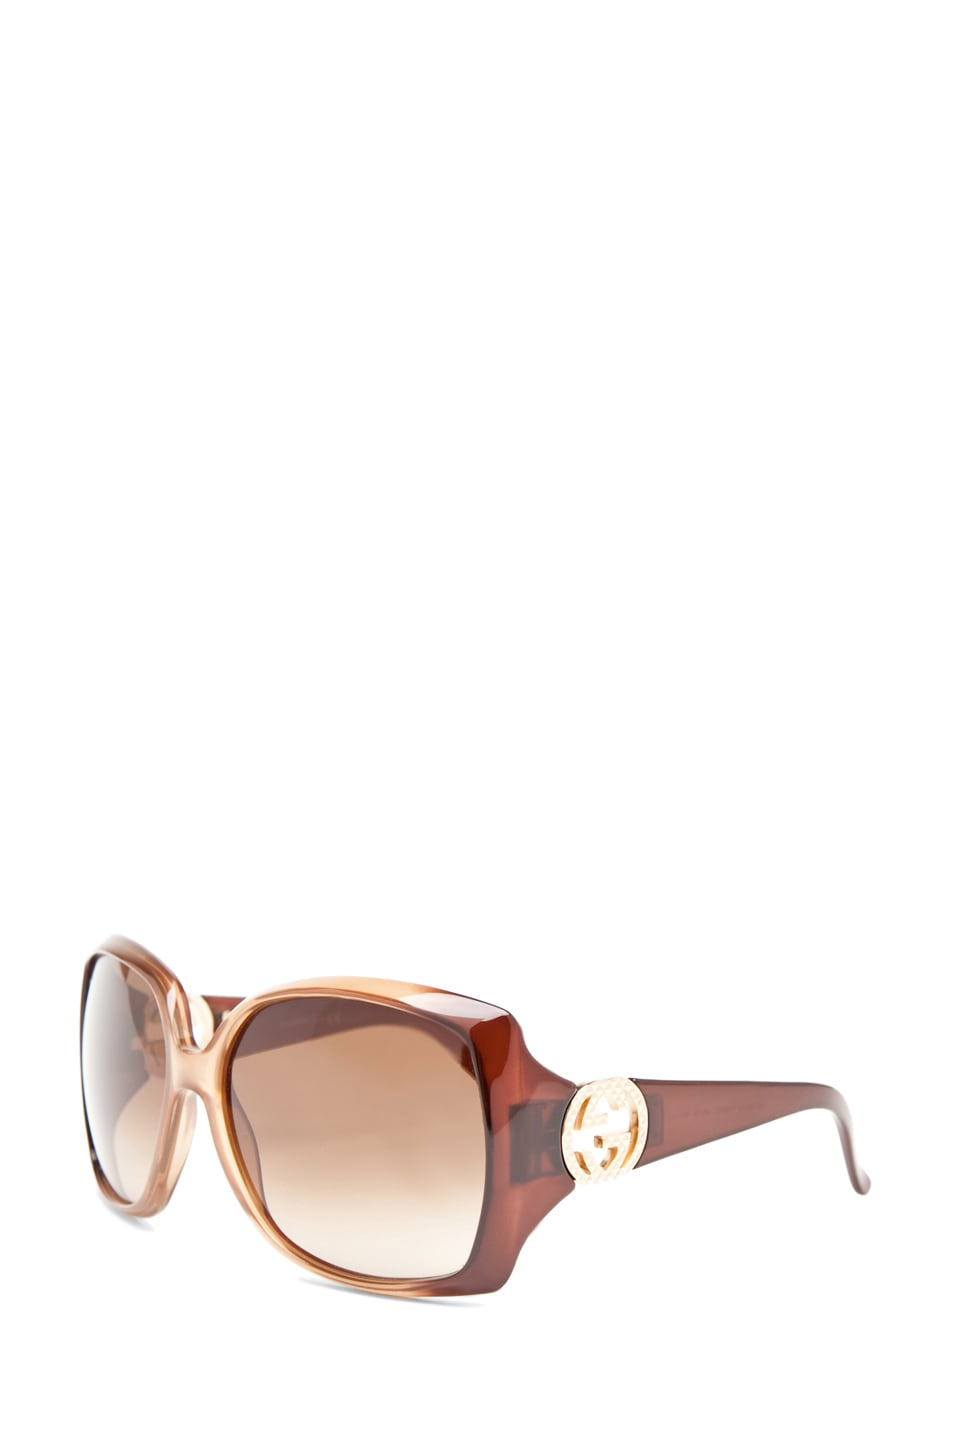 Image 2 of Gucci 3503 Sunglasses in Brown Beige